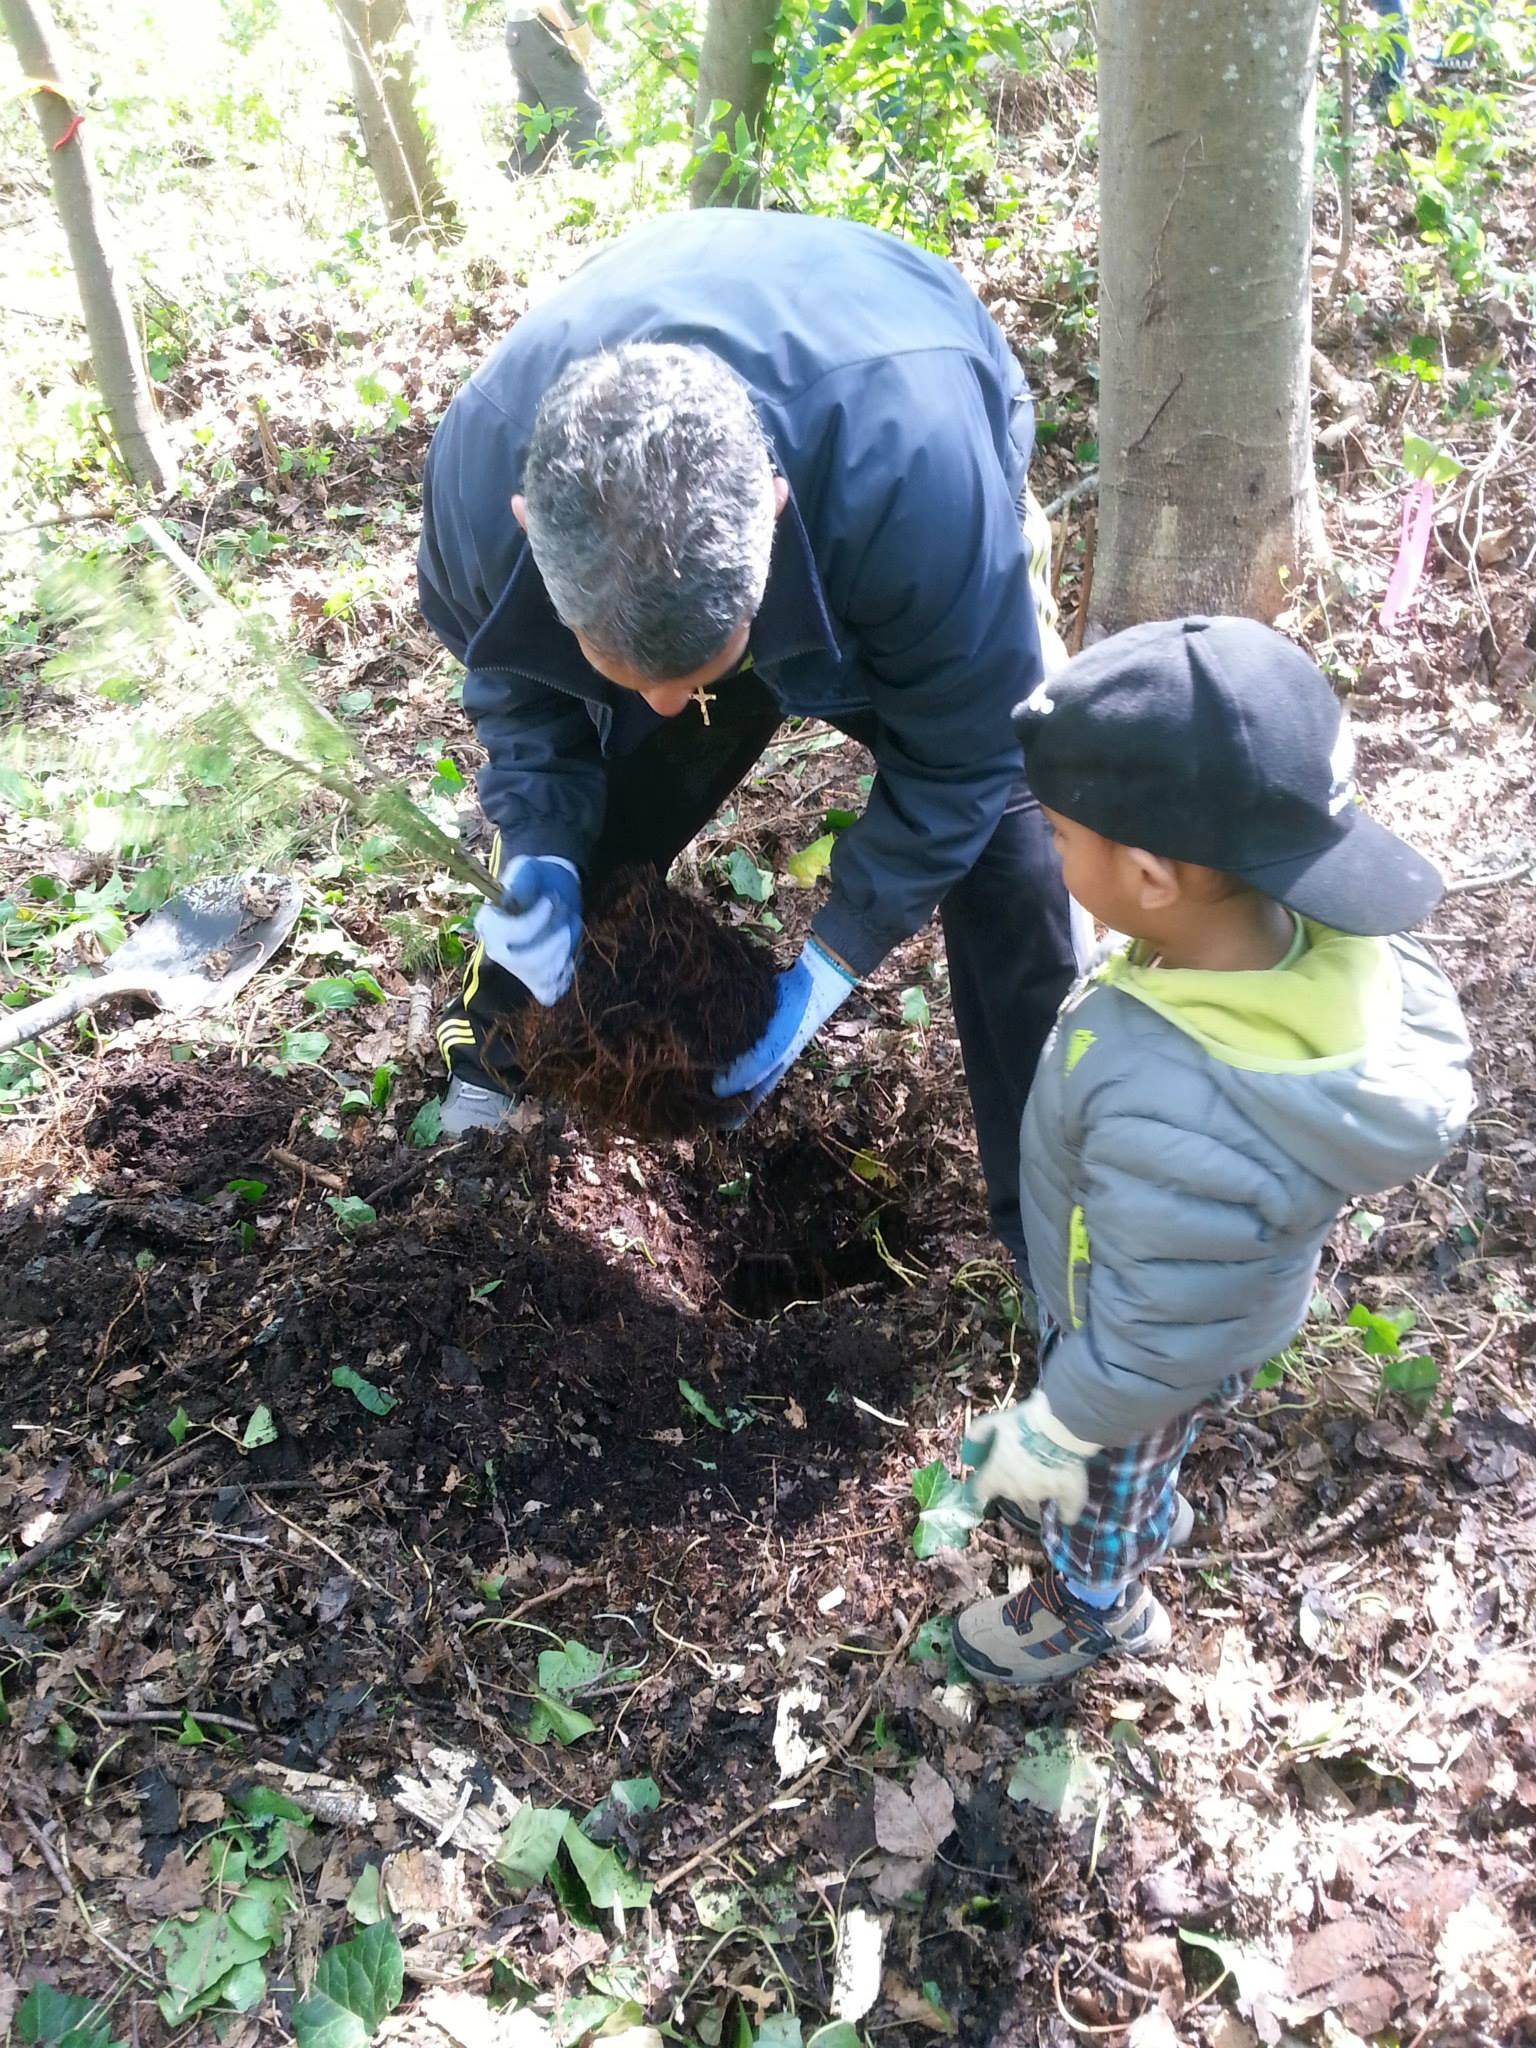 A father and son plant a non-invasive tree after heavy removal of English ivy, an invasive species (Photo: Robbin Whachell)